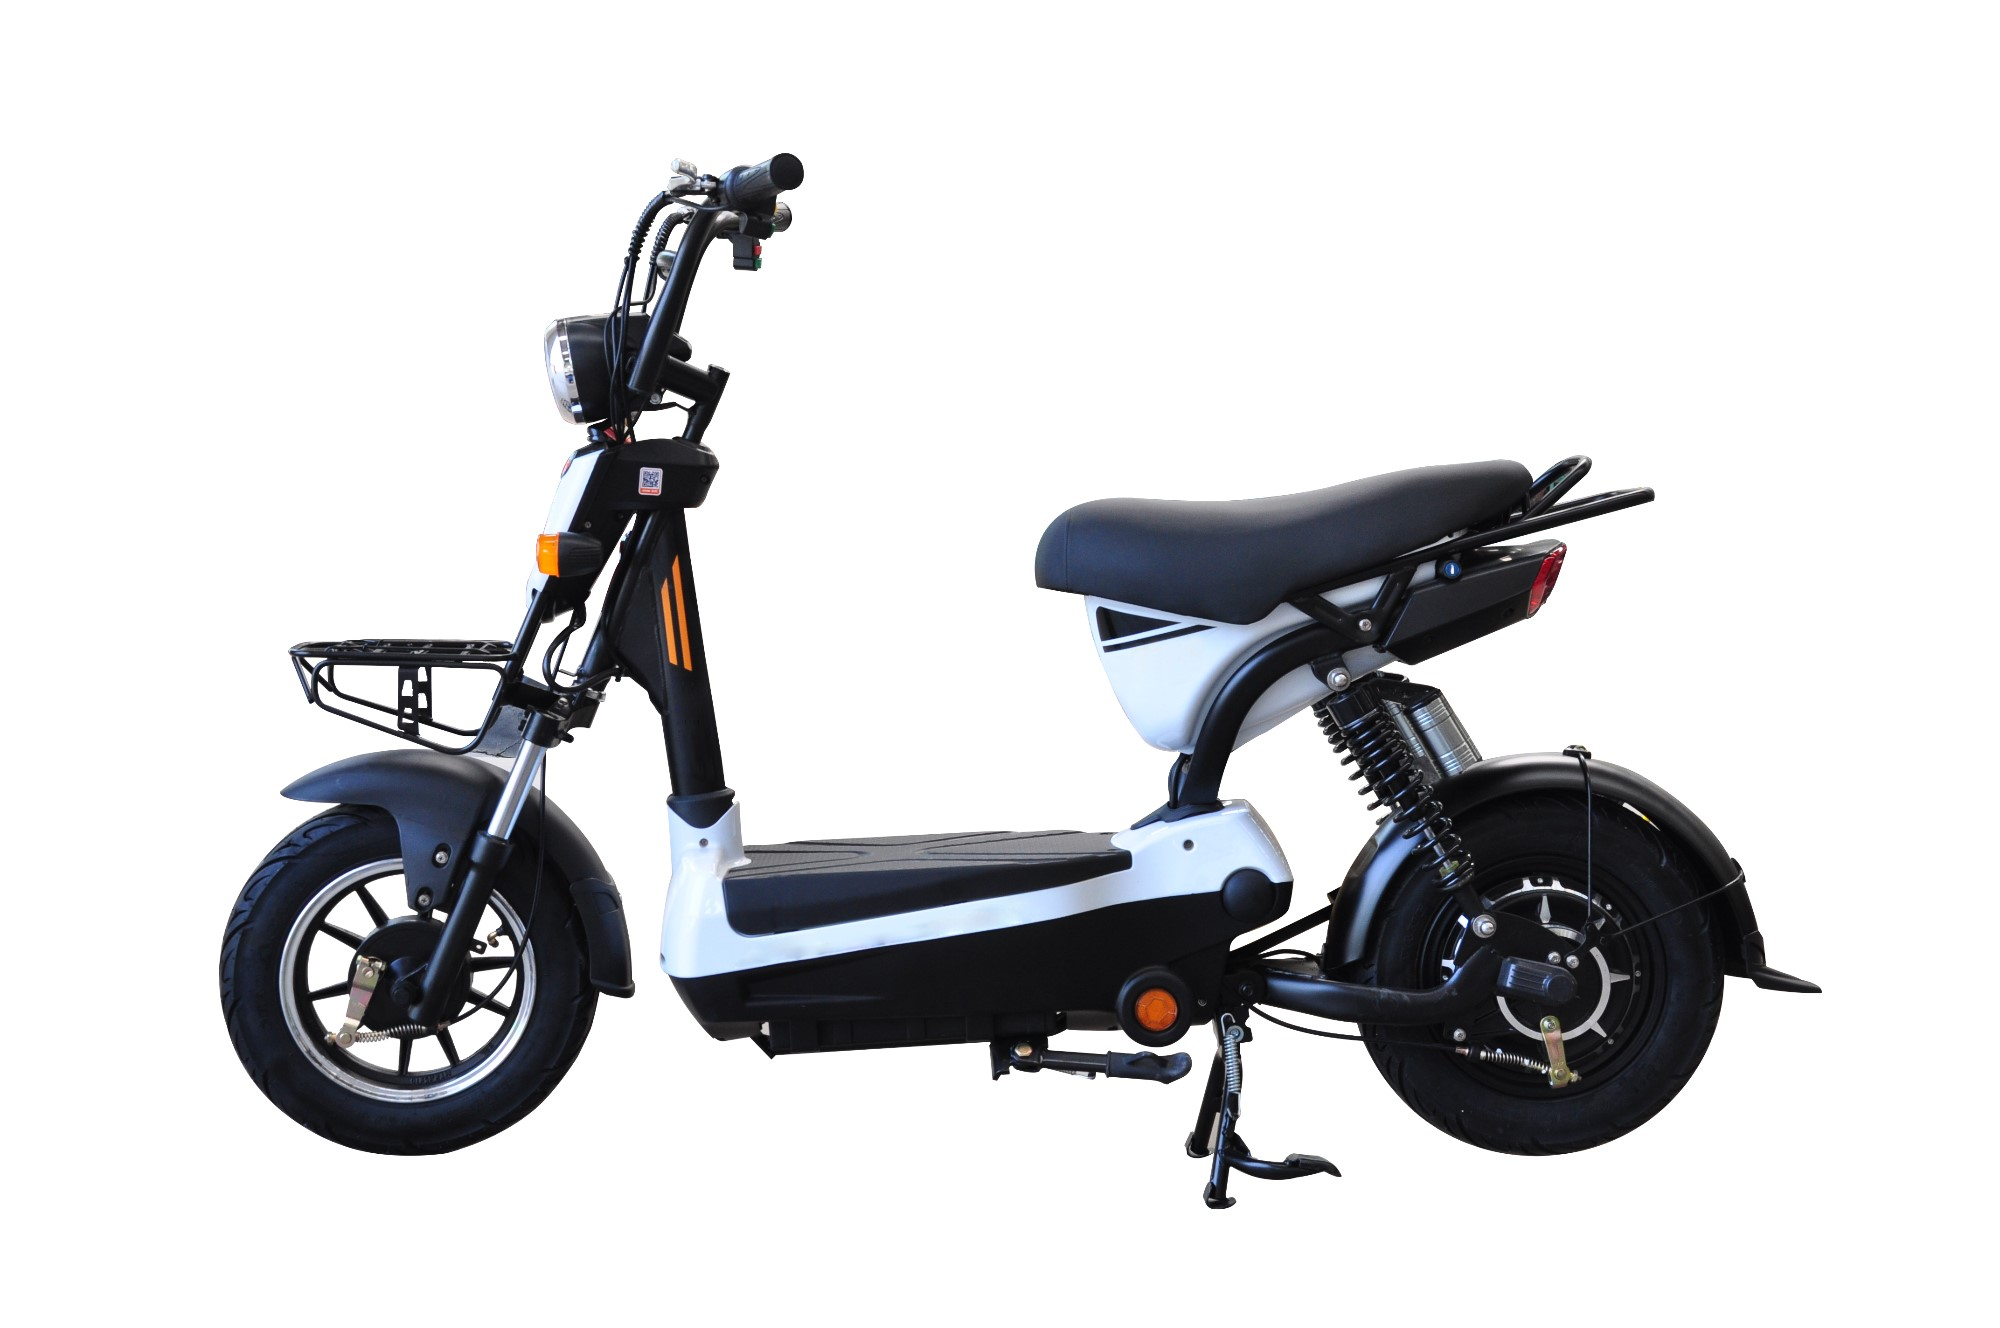 High quality New Design 2 Wheels Adult Electric Bike/scooter Quotes,China New Design 2 Wheels Adult Electric Bike/scooter Factory,New Design 2 Wheels Adult Electric Bike/scooter Purchasing